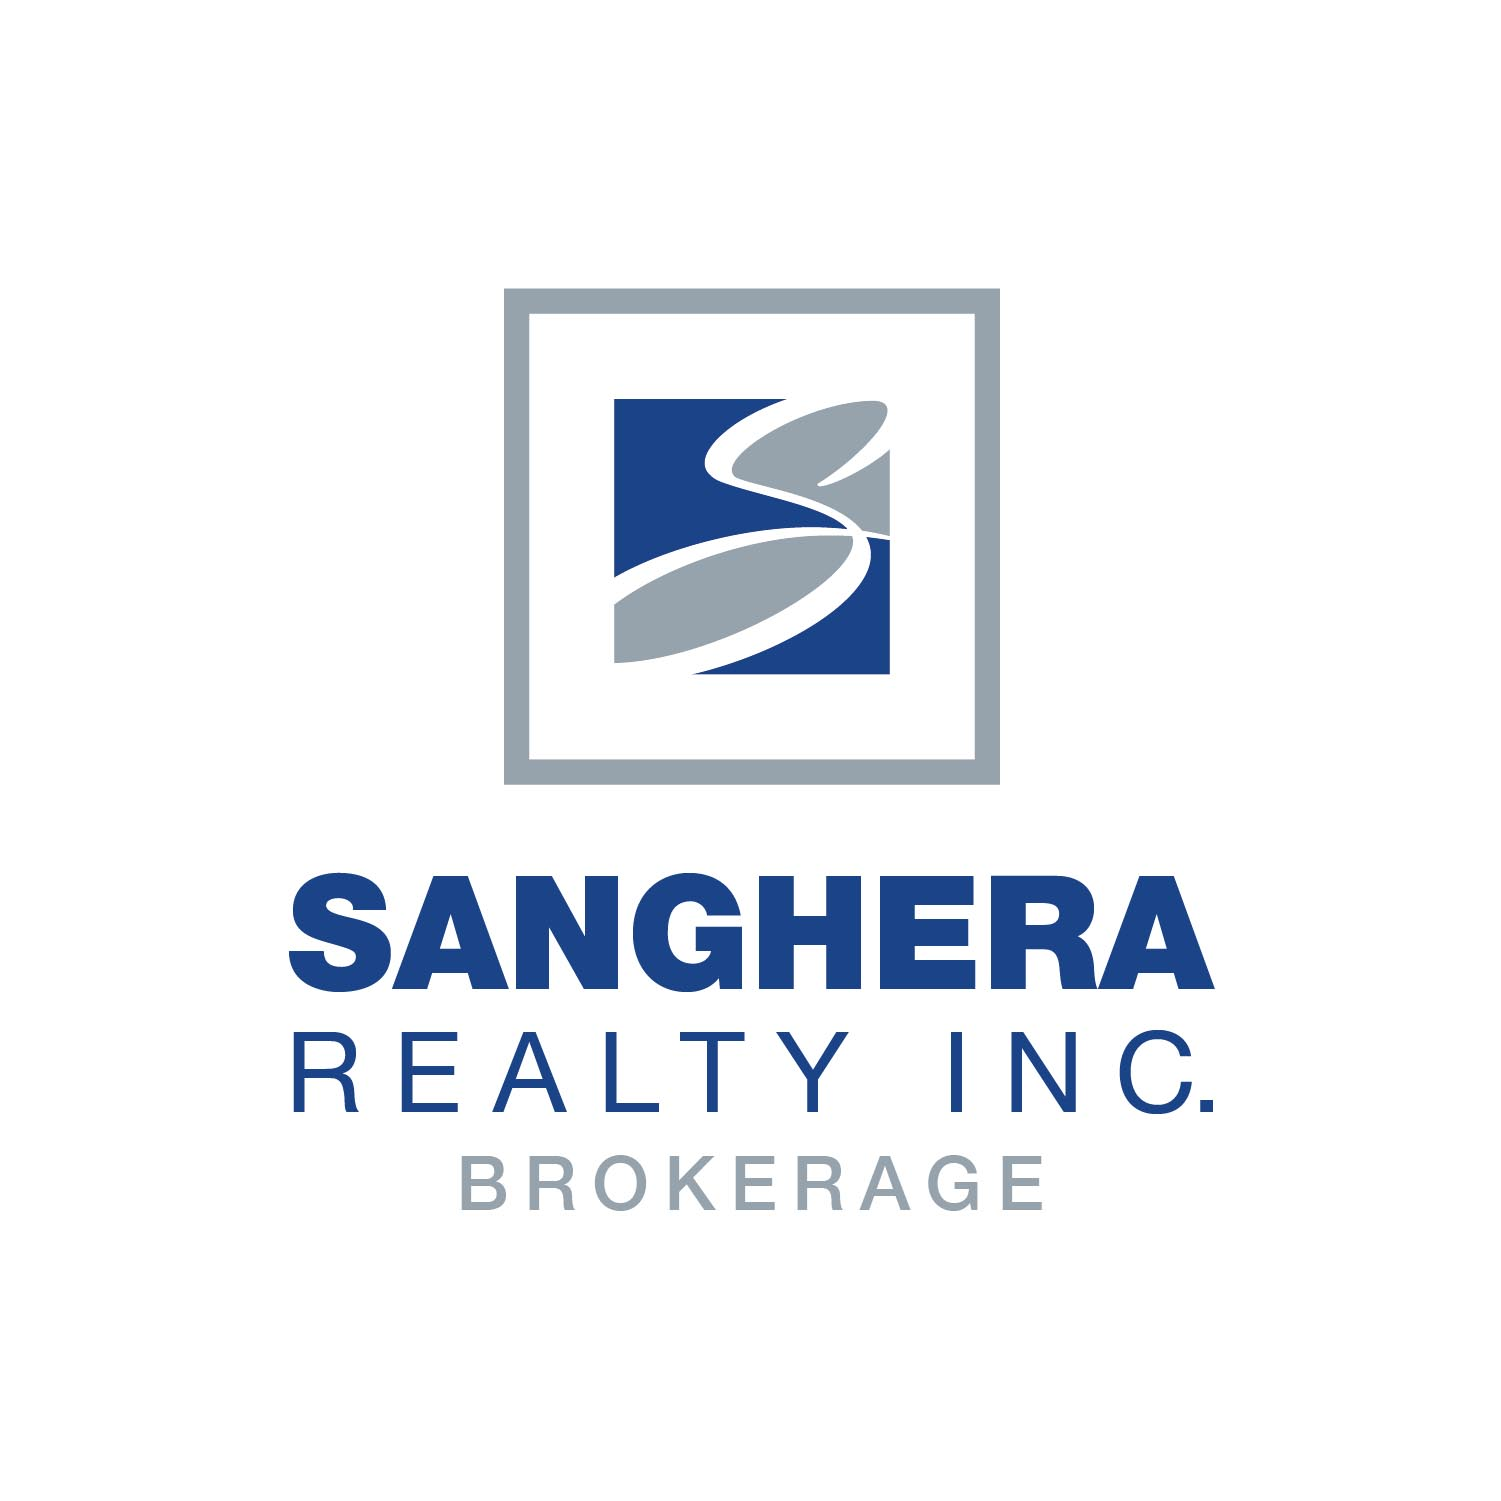 SANGHERA REALTY INC., BROKERAGE*